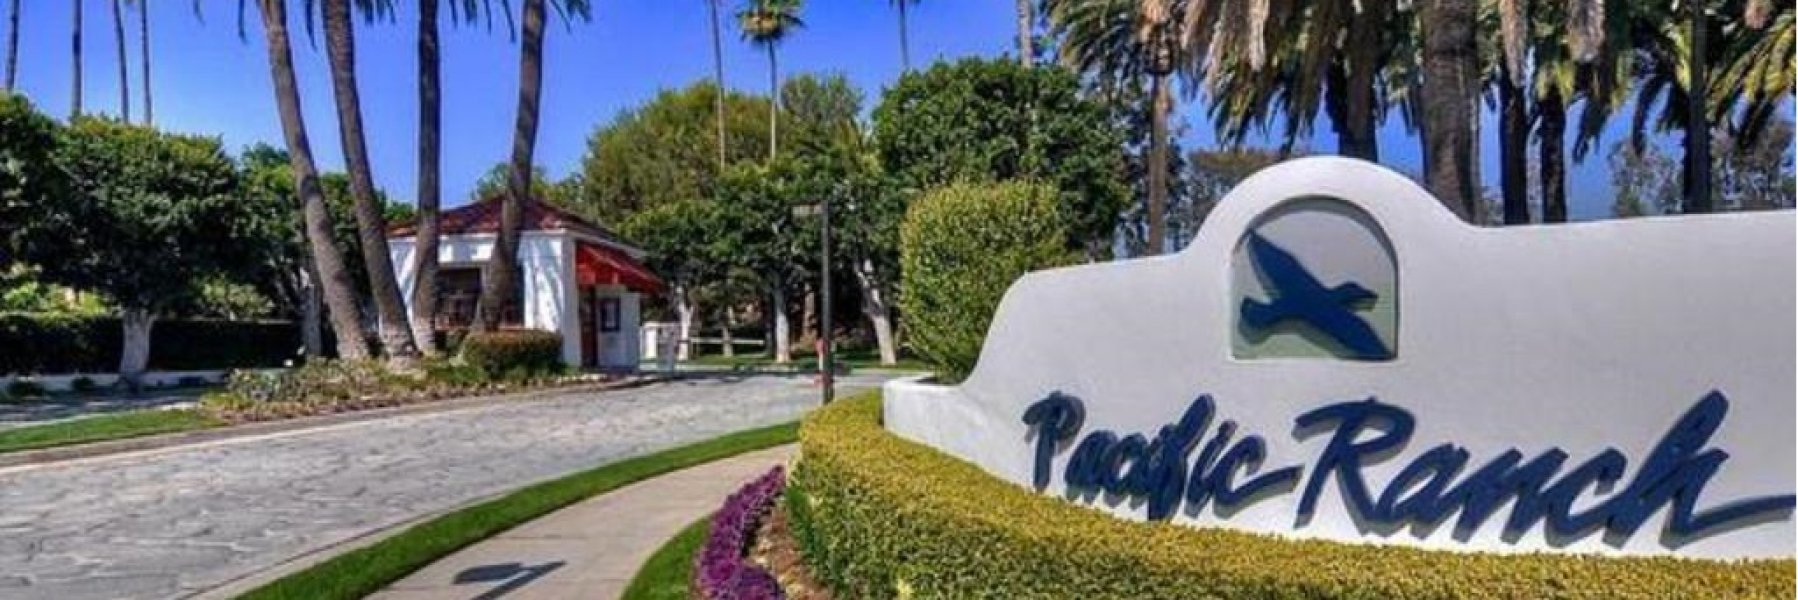 Pacific Ranch is a community of homes in Huntington Beach California